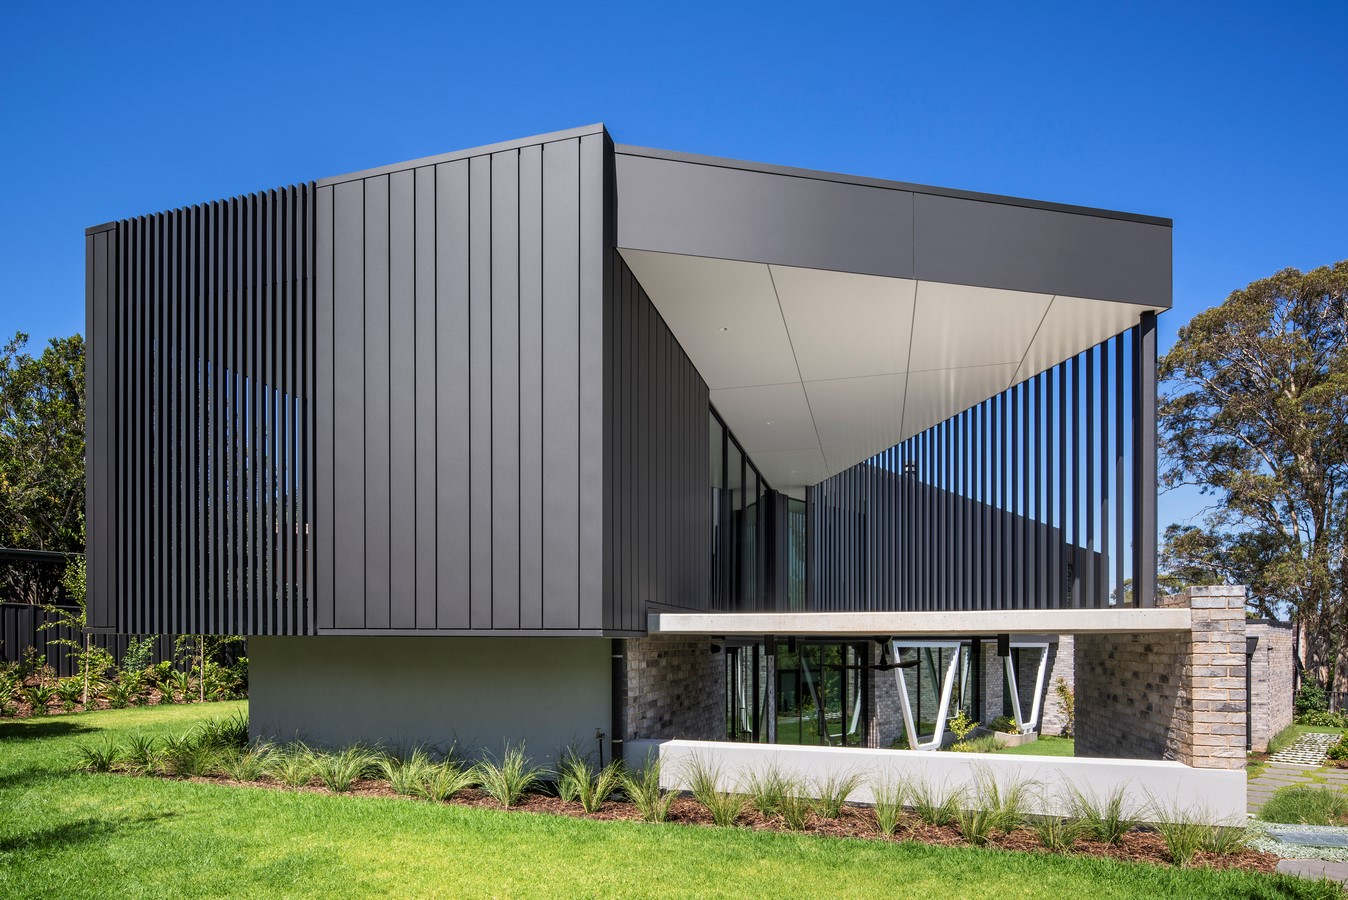 5069 Rentoul - A House On Two Stones by RAD Studio: Sheet 3